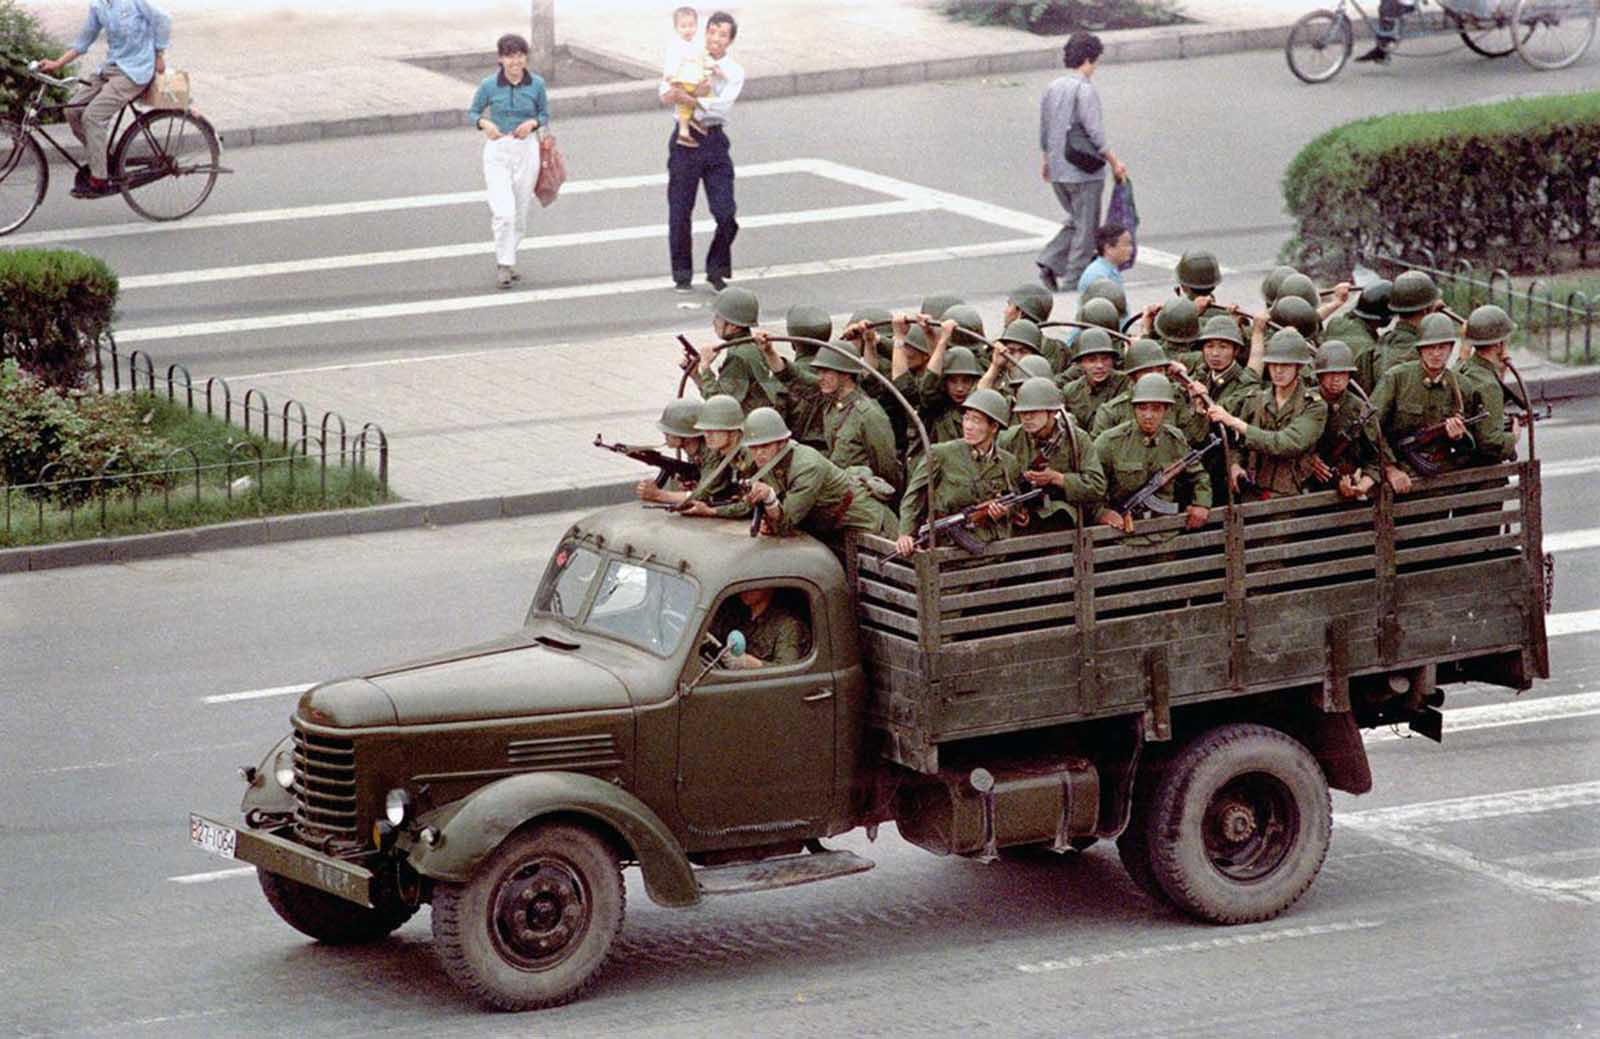 A truck drives Chinese soldiers down Chang'an Boulevard in Beijing, on June 5, 1989, one day after violence between government troops and pro-democracy protesters left hundreds dead.